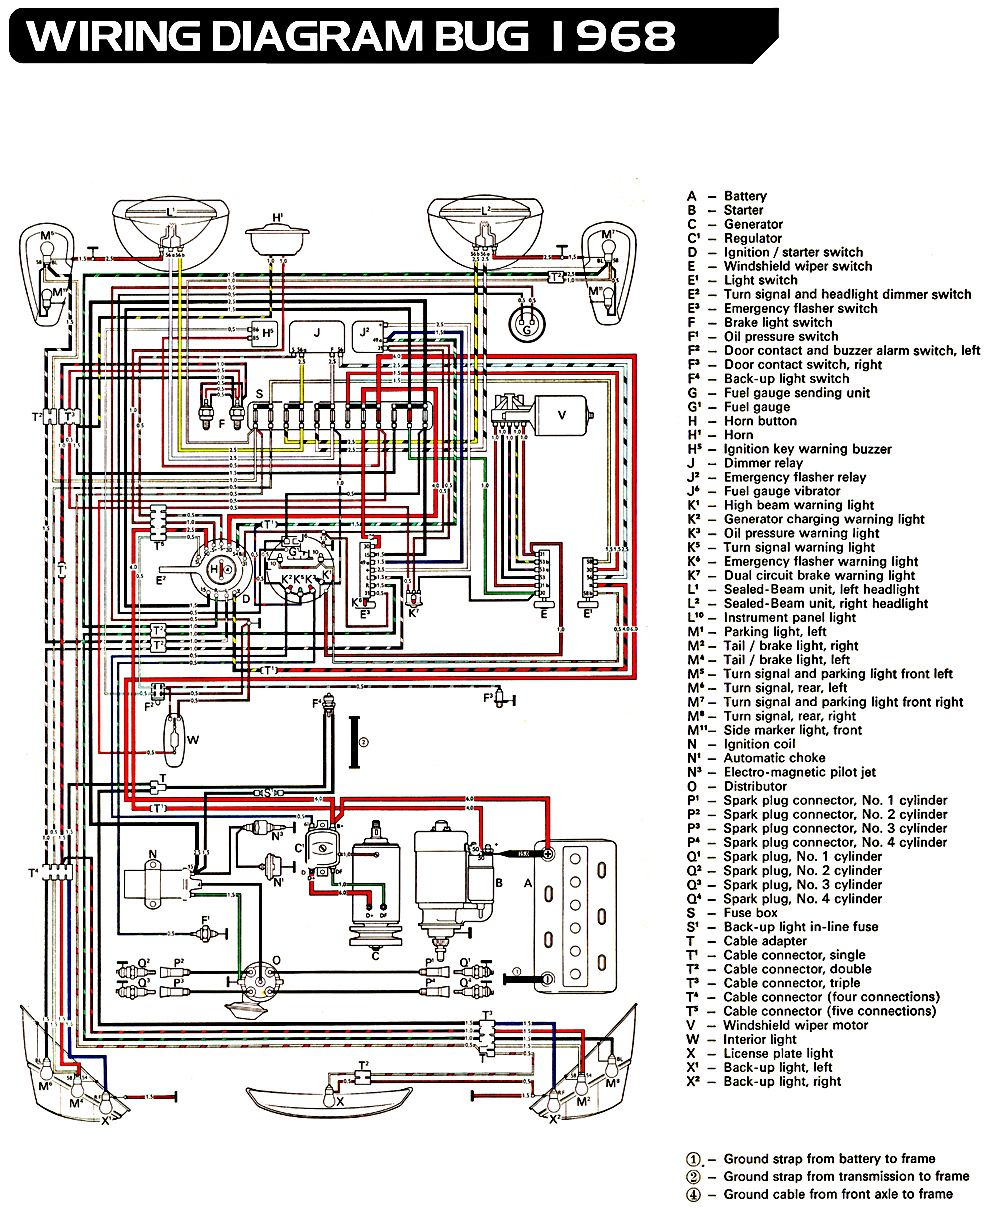 vw bug engine wiring diagram - wiring diagram page ball-owner -  ball-owner.faishoppingconsvitol.it  faishoppingconsvitol.it